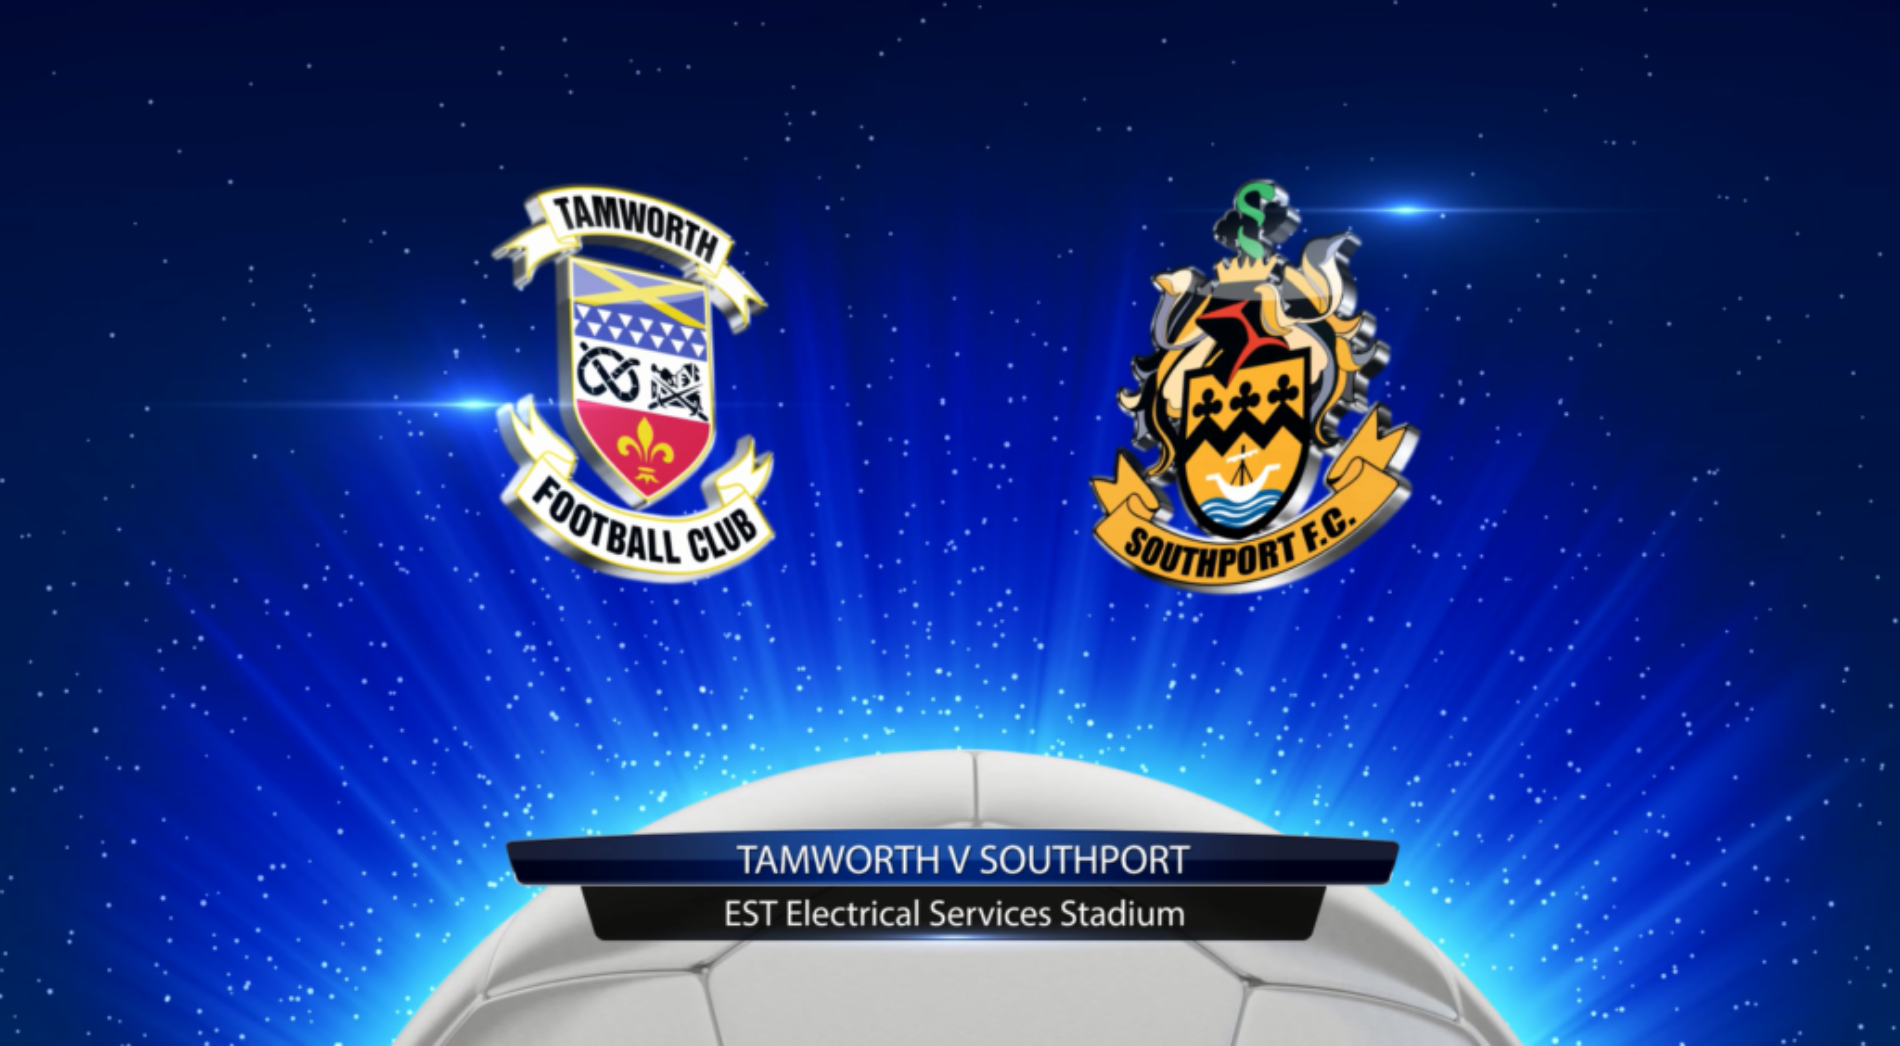 HIGHLIGHTS | Tamworth 3-3 Southport